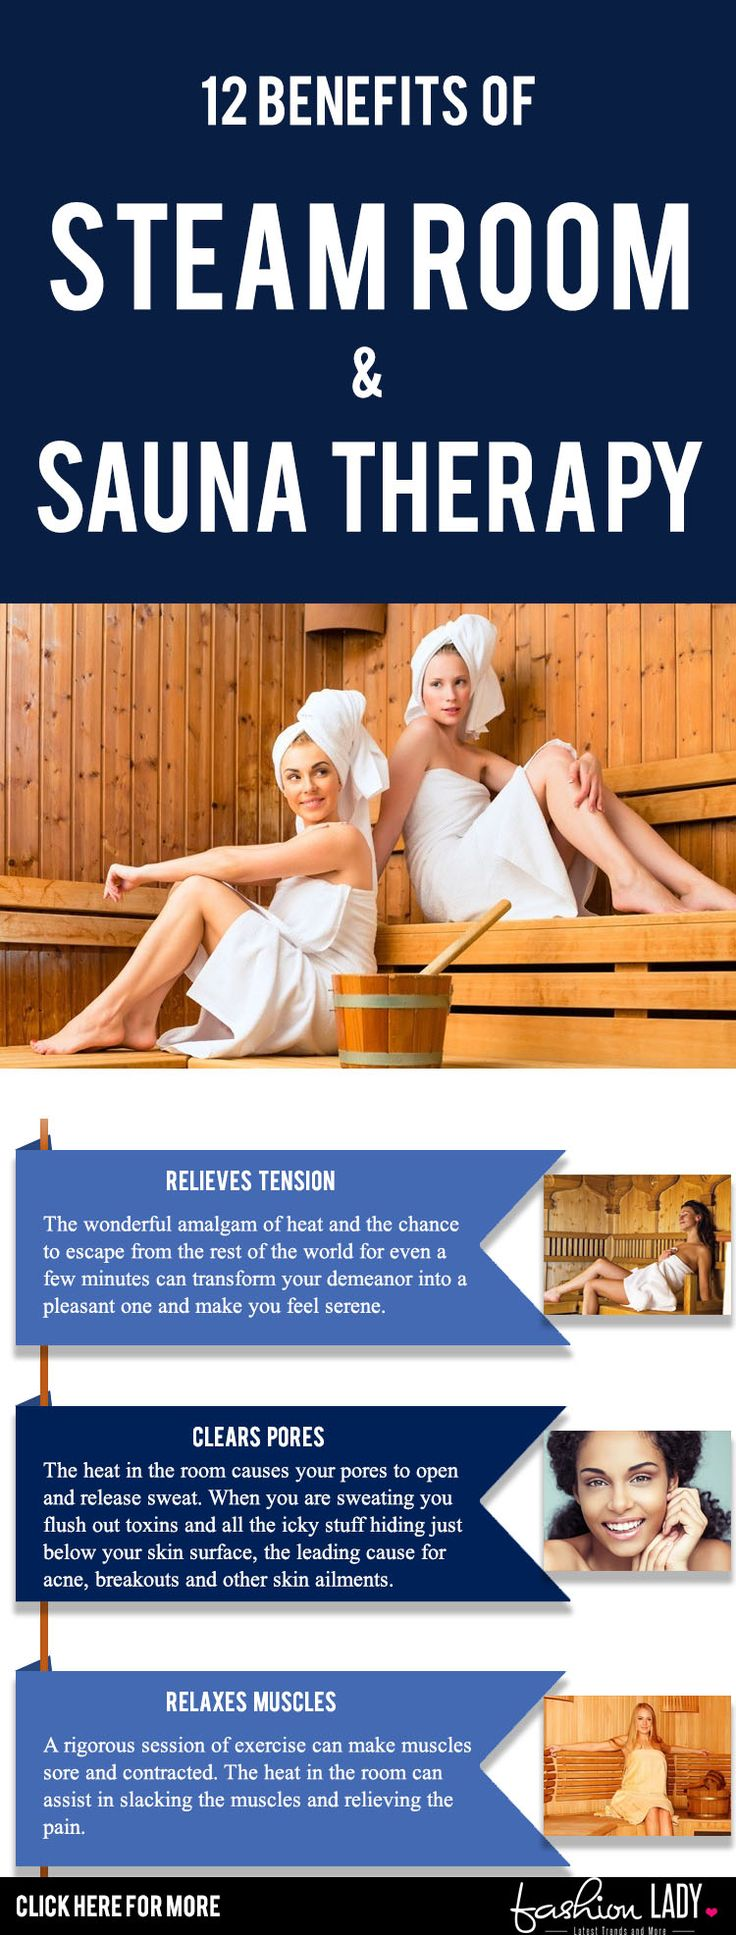 12 Benefits Of Steam Room & Sauna Therapy